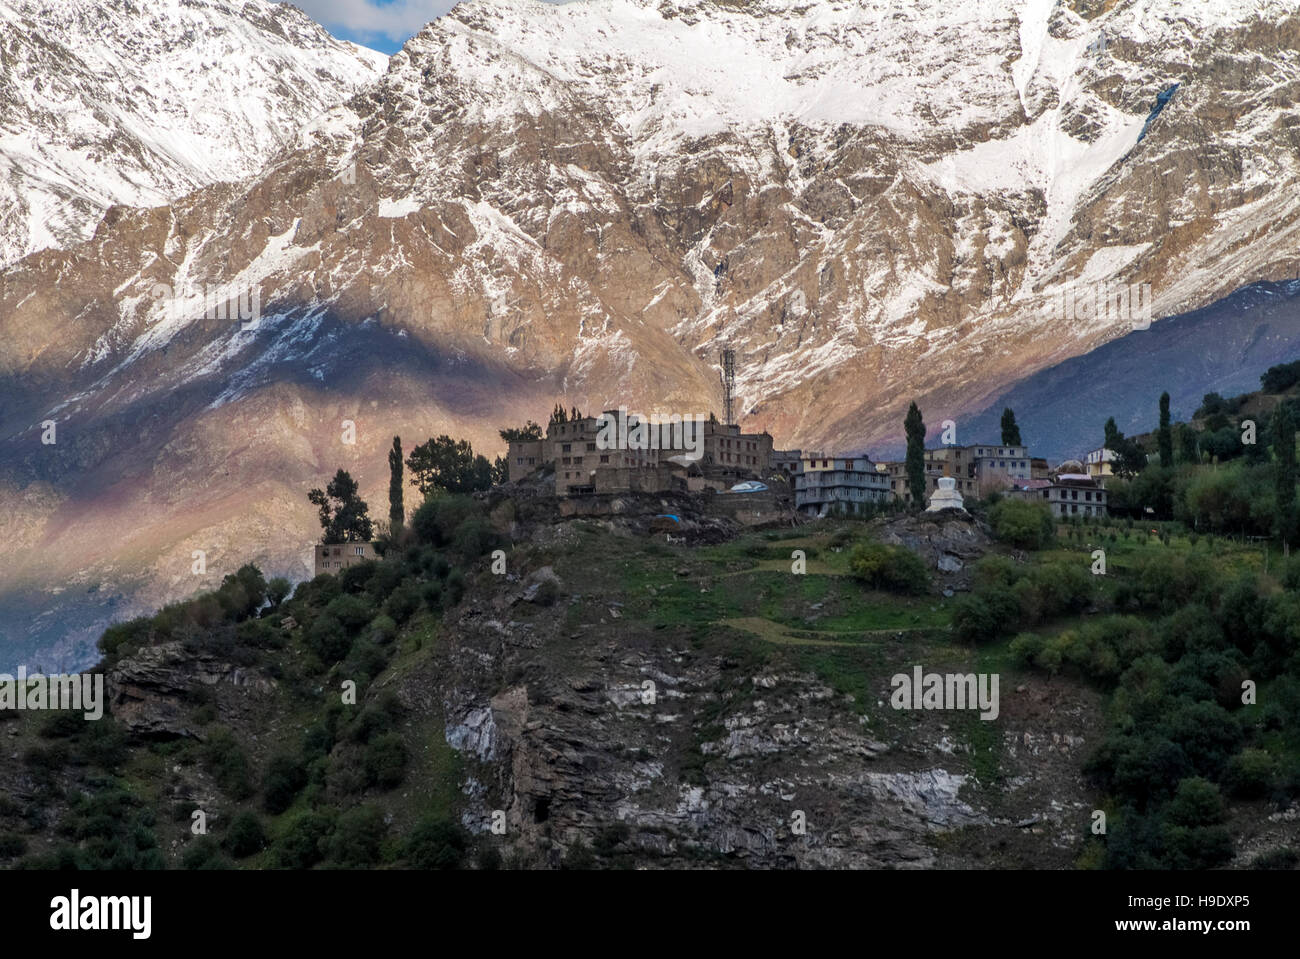 The Khardung Monastery, a Buddhist temple which sits along the Leh-Manali Highway, in Keylong in Himachal Pradesh. - Stock Image